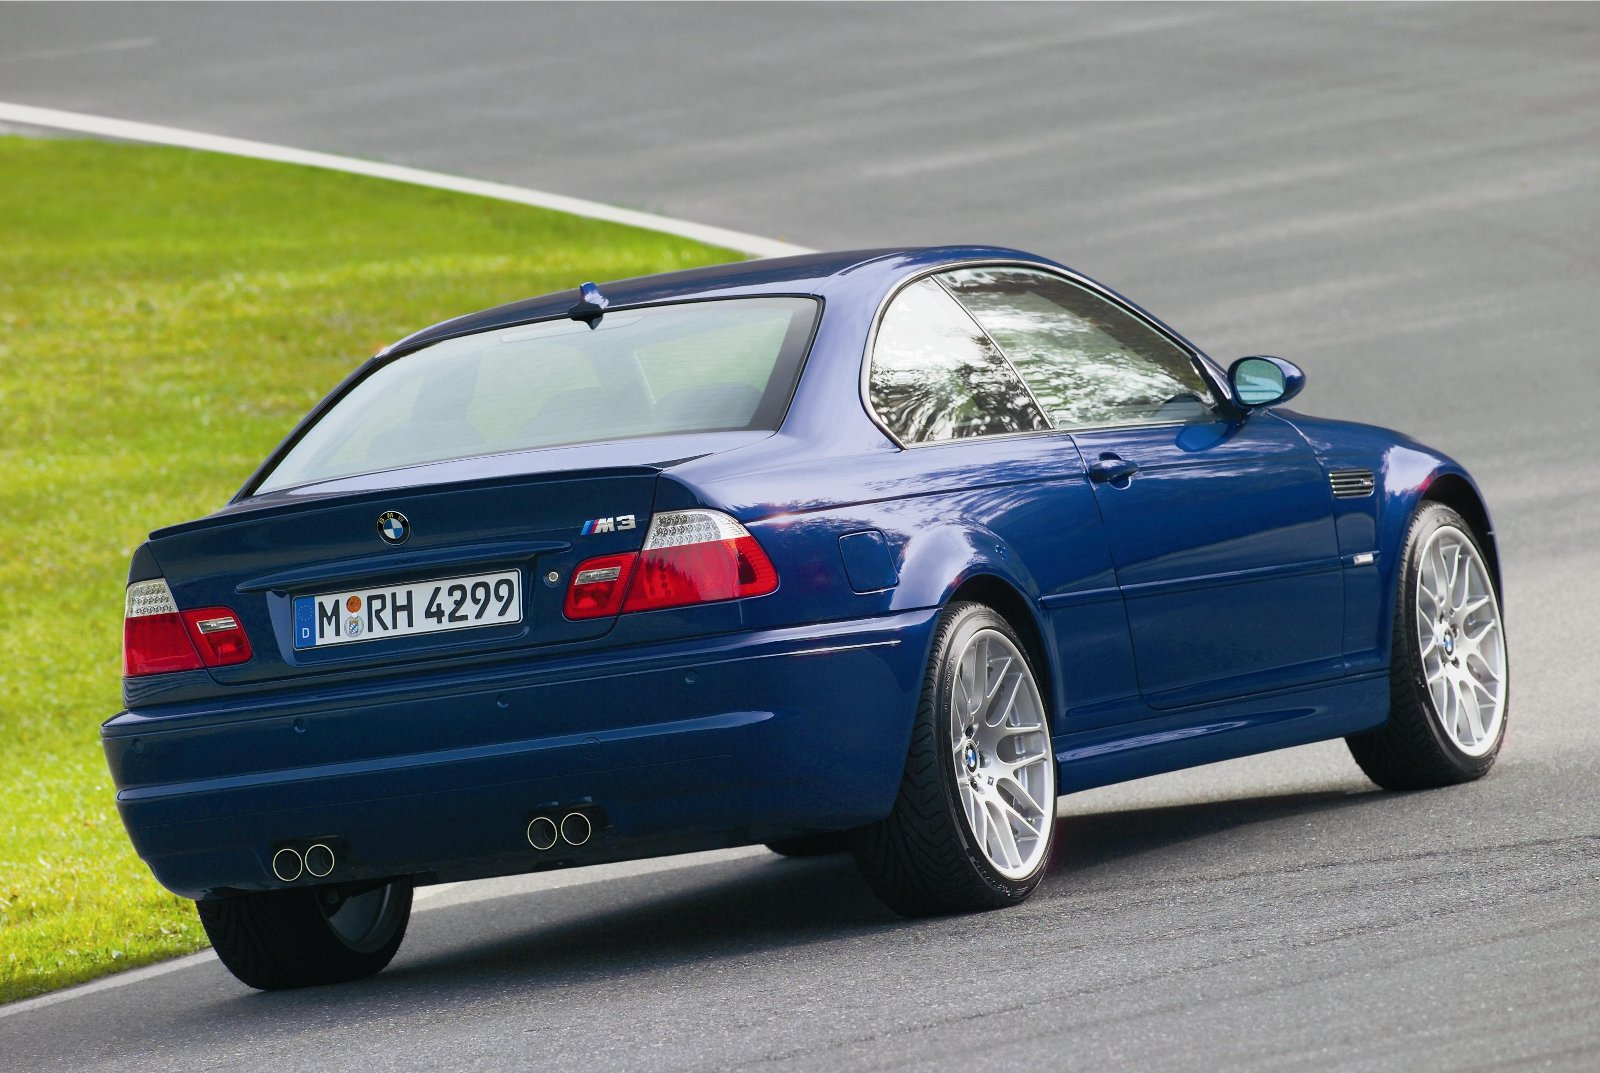 bmw m3 coup e46 competition paket weitere fitnesskur. Black Bedroom Furniture Sets. Home Design Ideas